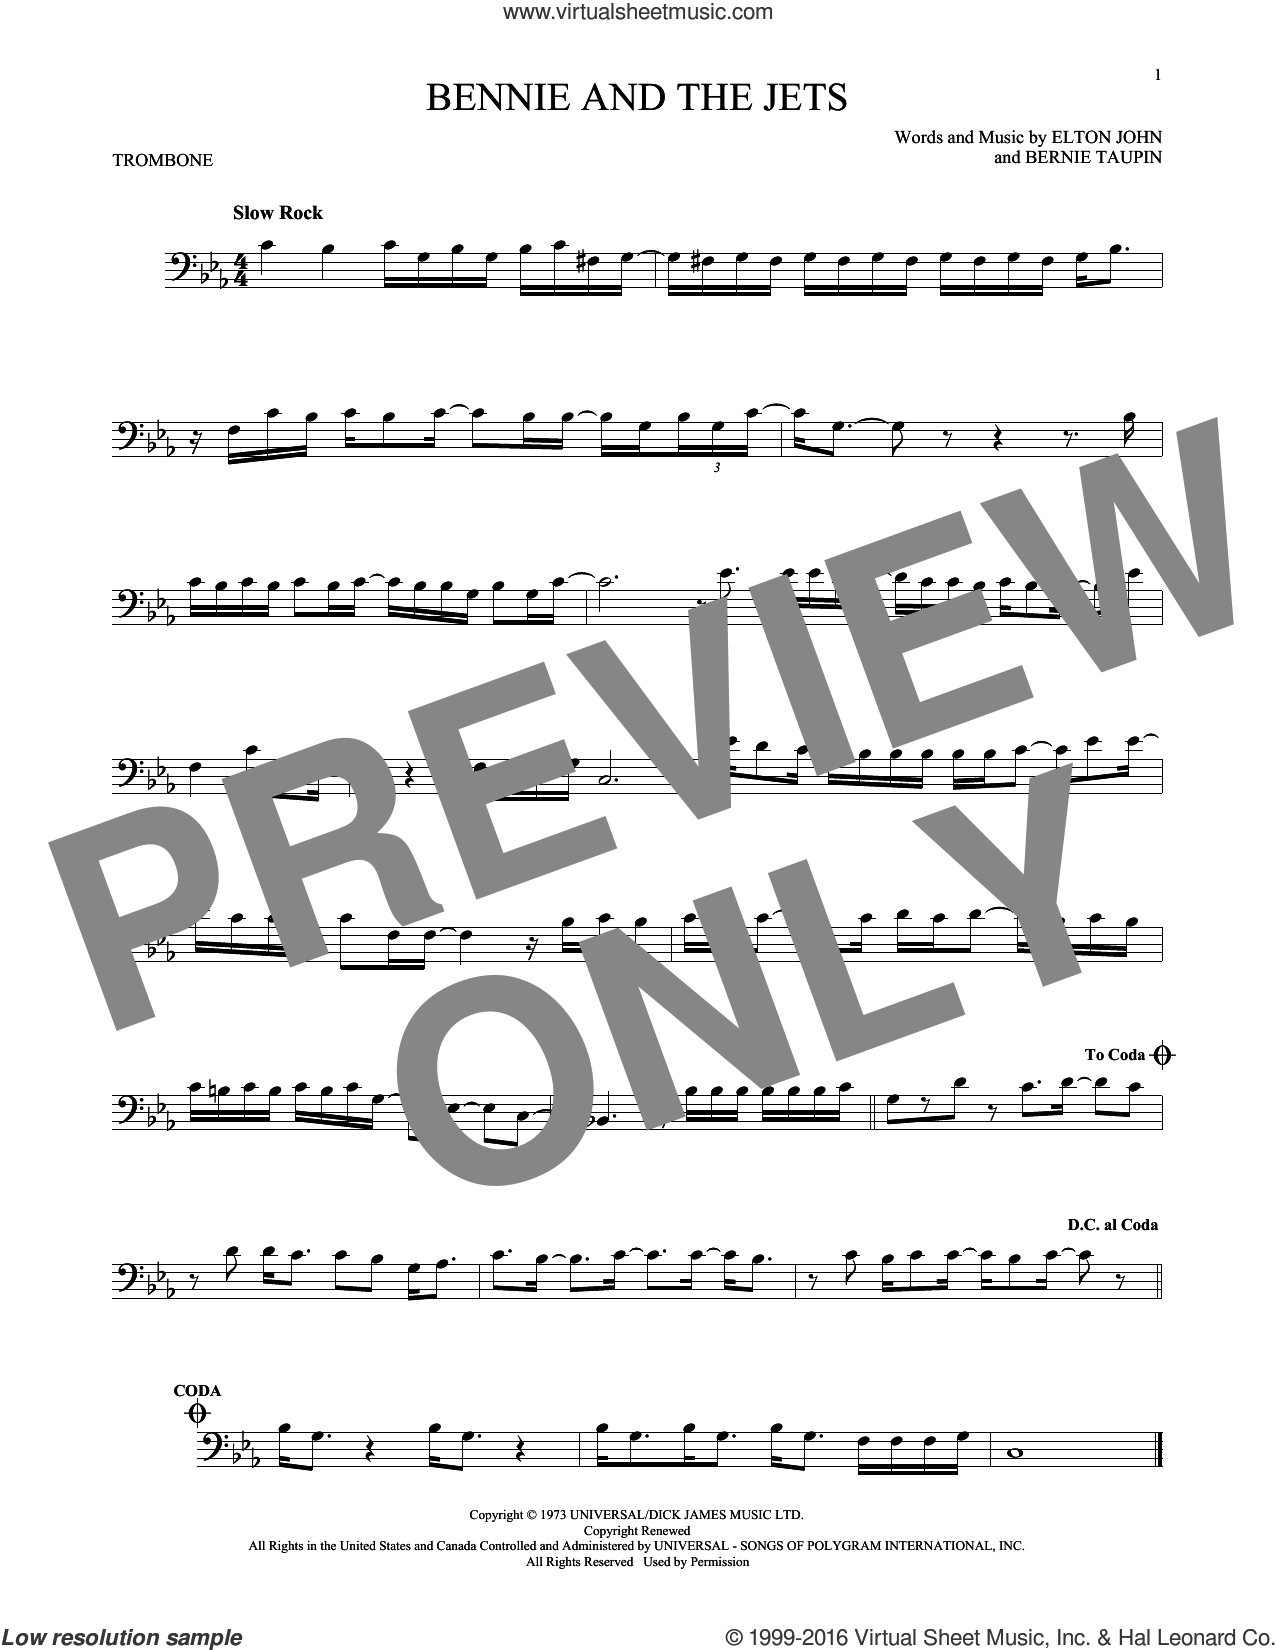 Bennie And The Jets sheet music for trombone solo by Bernie Taupin and Elton John. Score Image Preview.